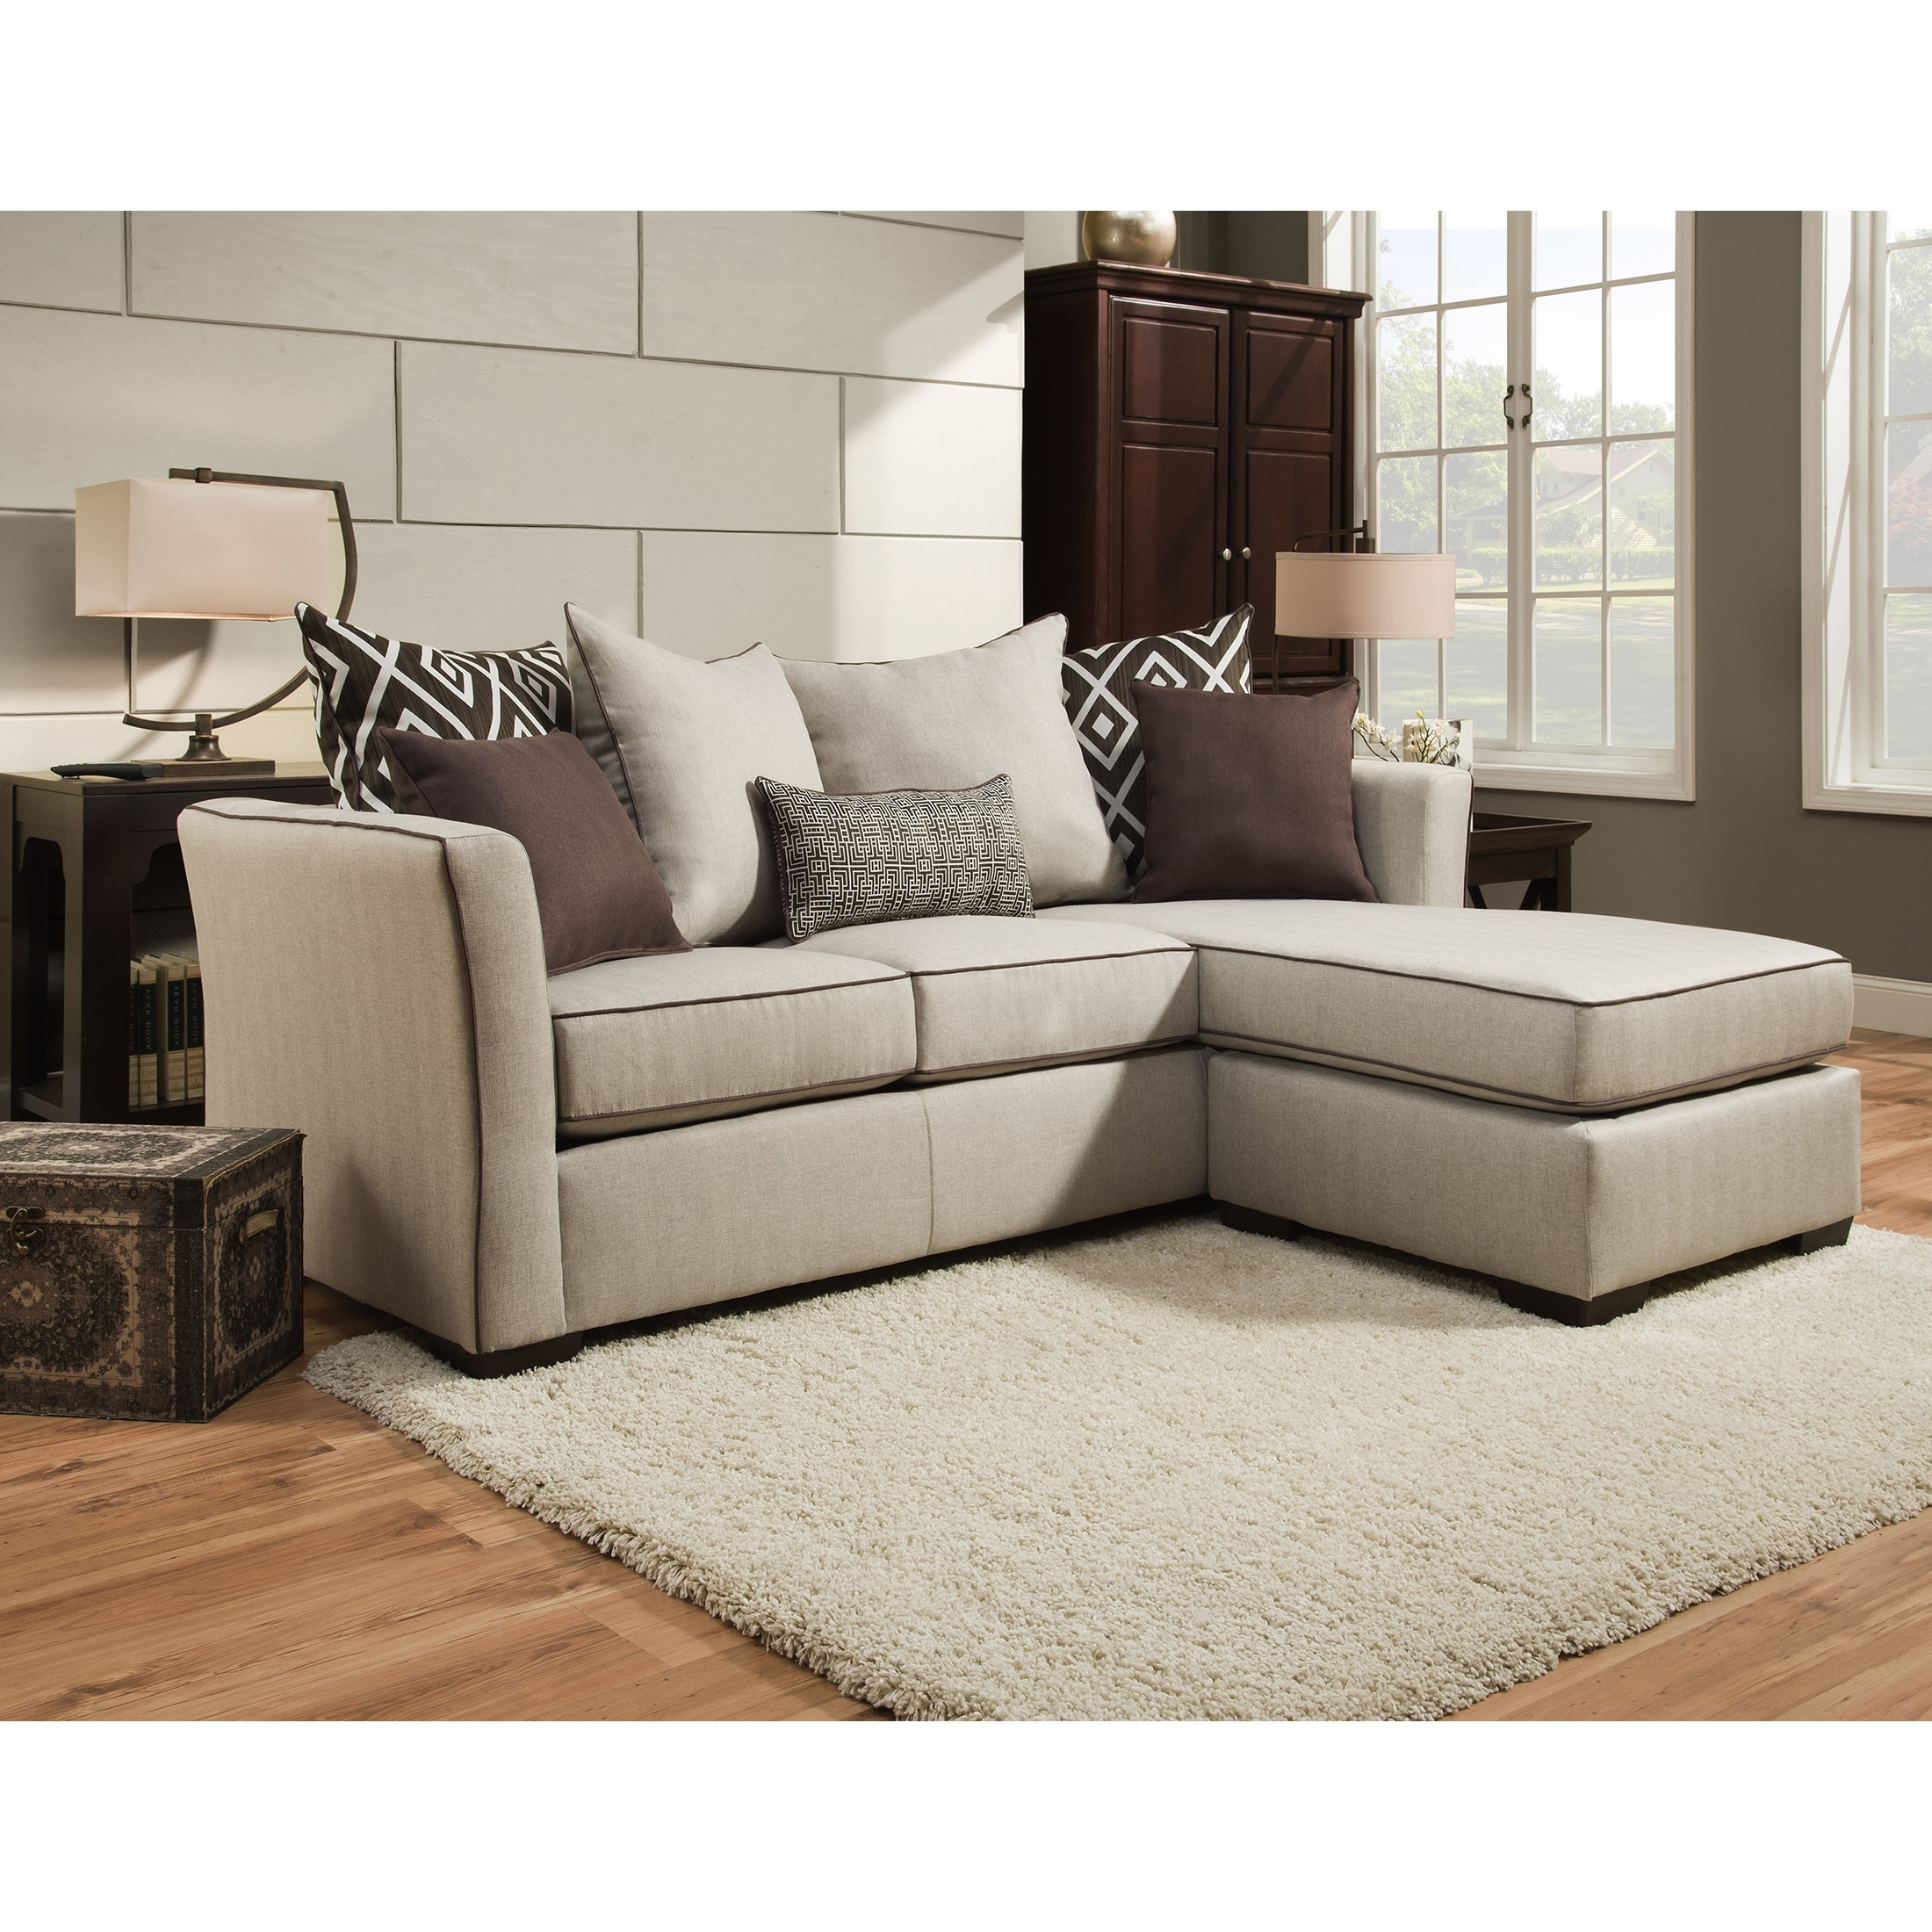 Popular Simmons Upholstery Stewart Sofa Chaise – Free Shipping Today In Simmons Chaise Sofas (View 8 of 20)